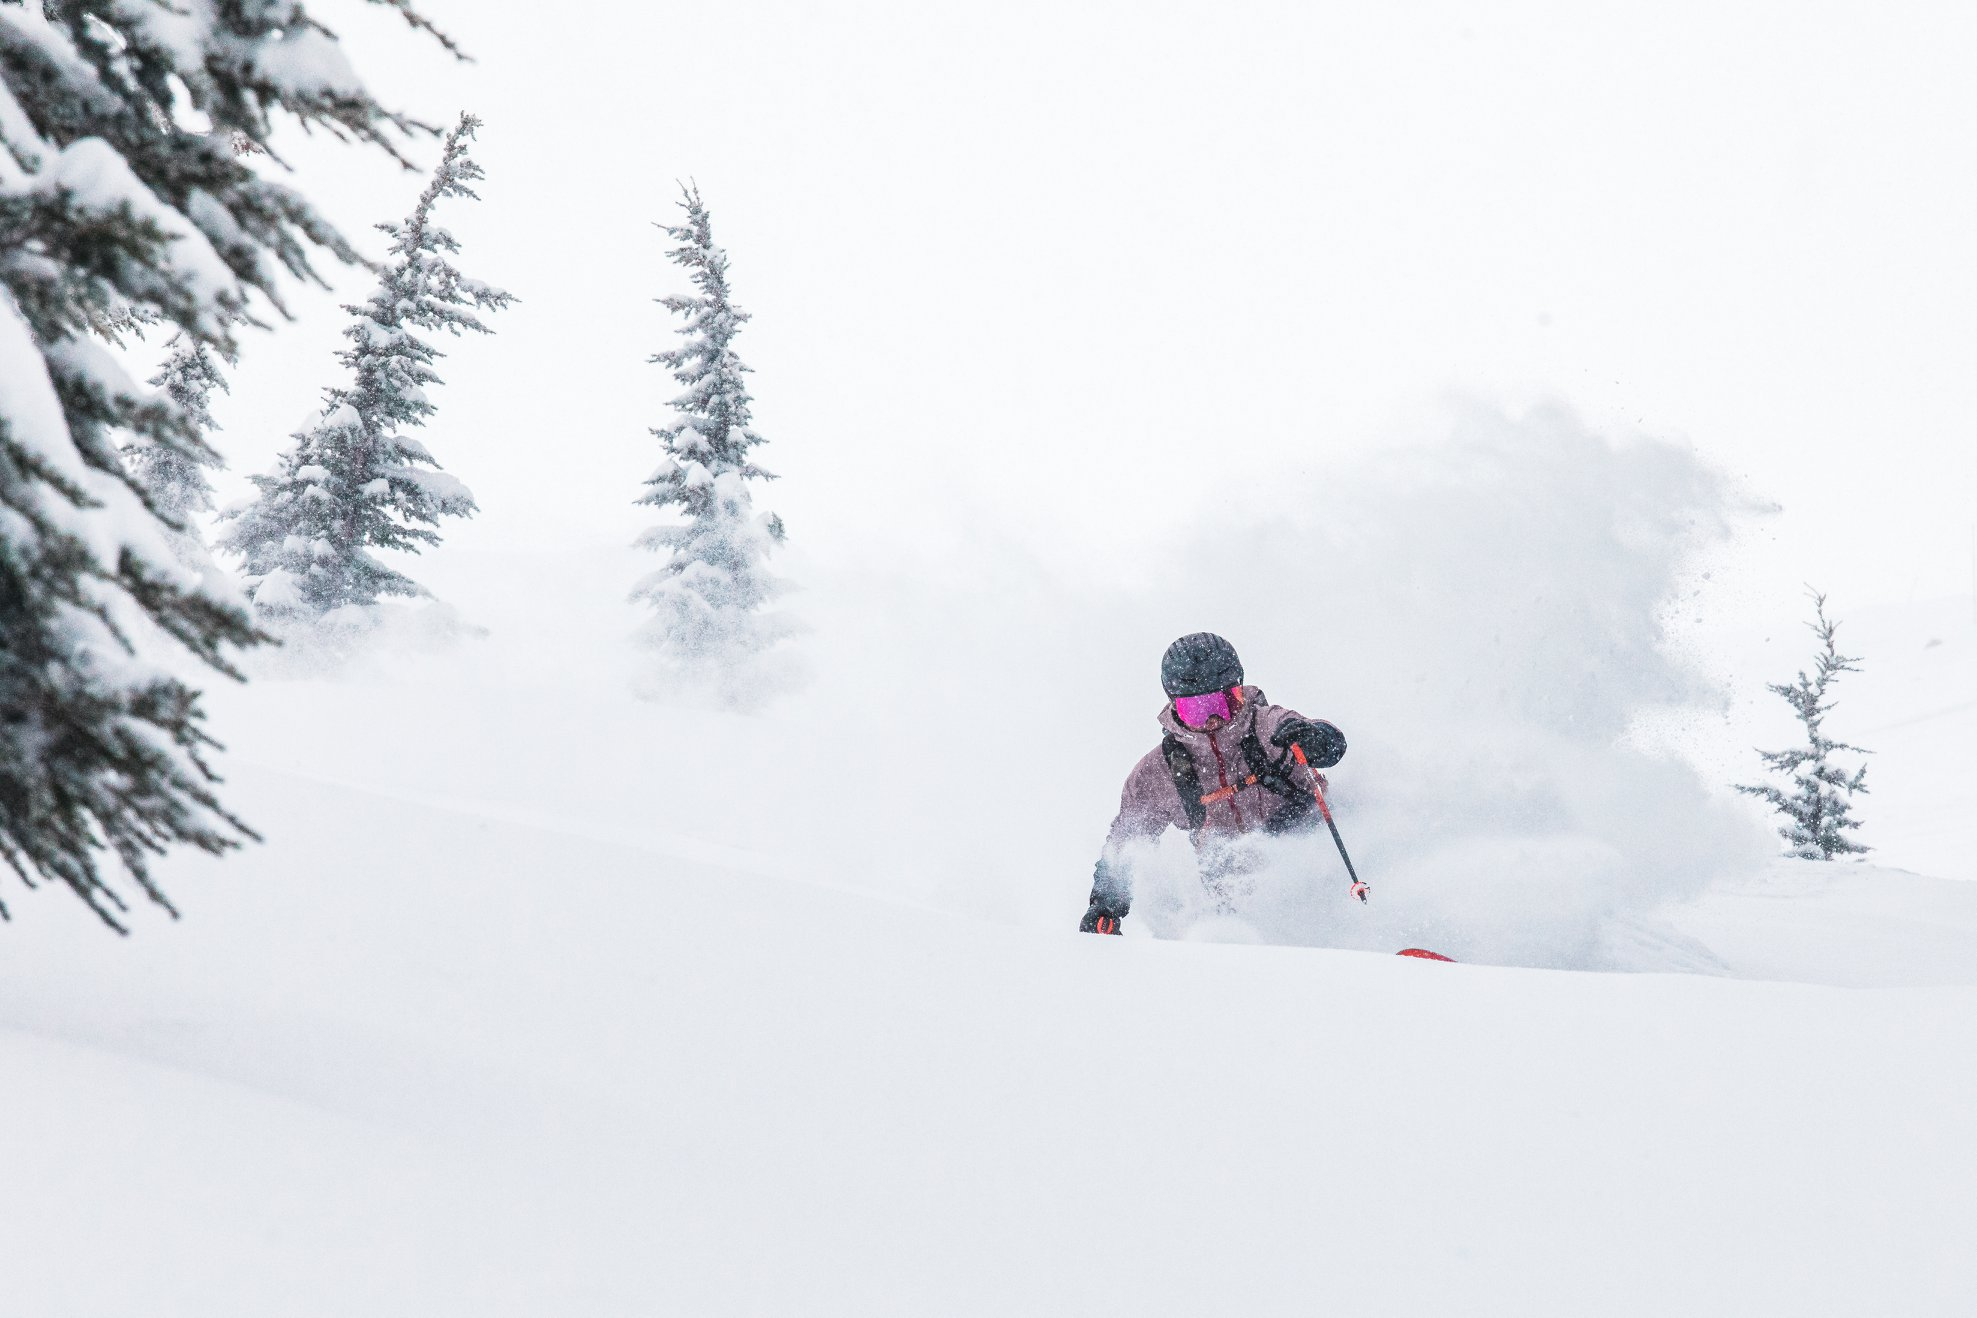 LIST: Forecasted Snow Totals For Each Lake Tahoe Resort (1/25-1/29)